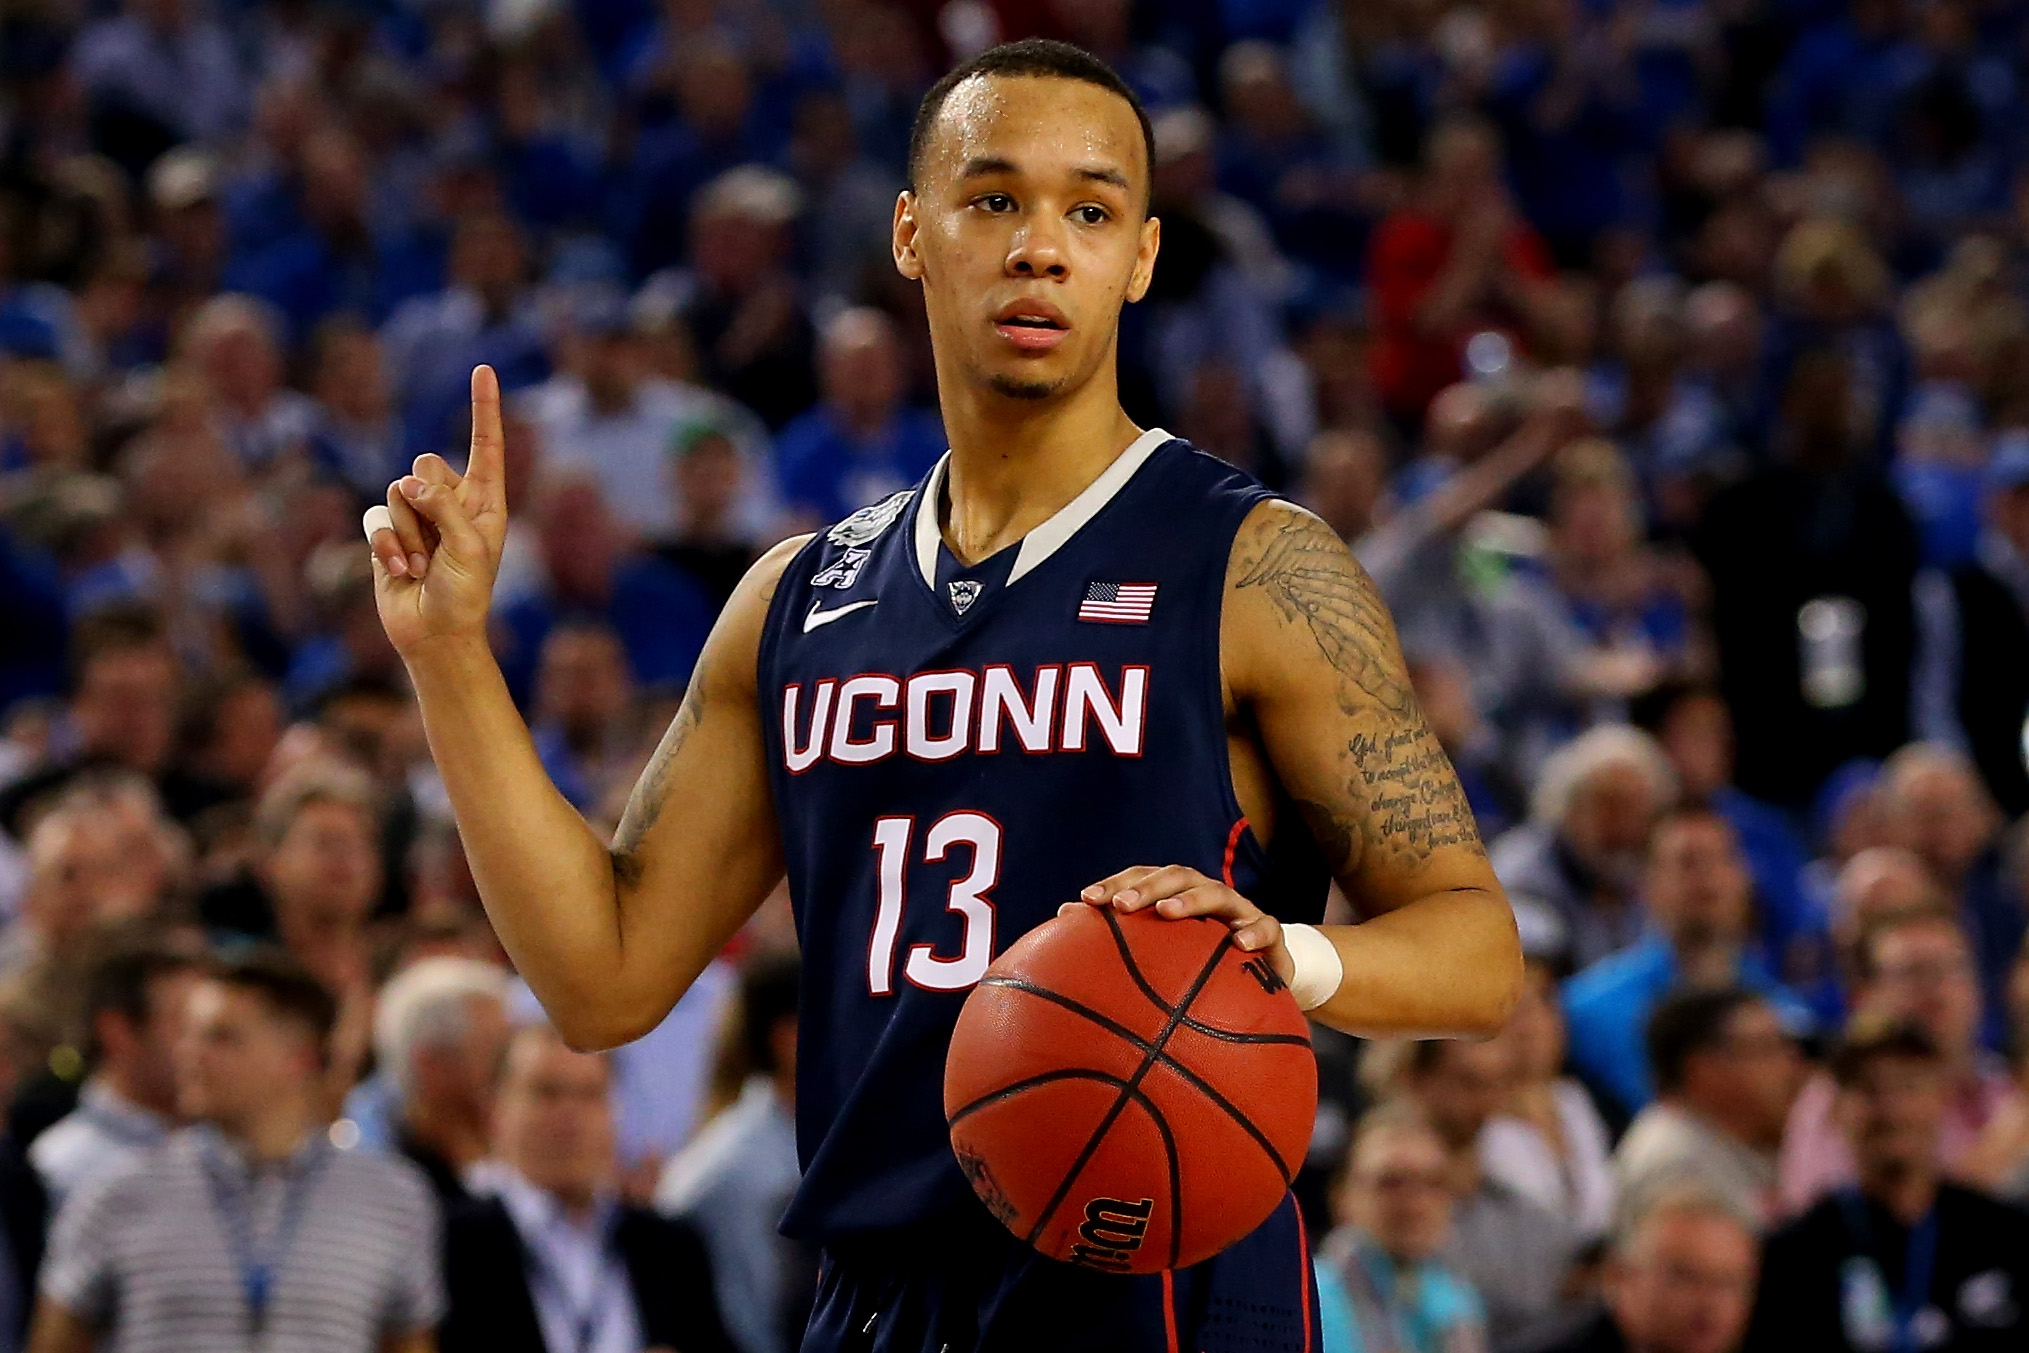 Shabazz Napier of the Connecticut Huskies reacts during the NCAA Men's Final Four Semifinal against the Florida Gators at AT&T Stadium on April 5, 2014 in Arlington, Texas.